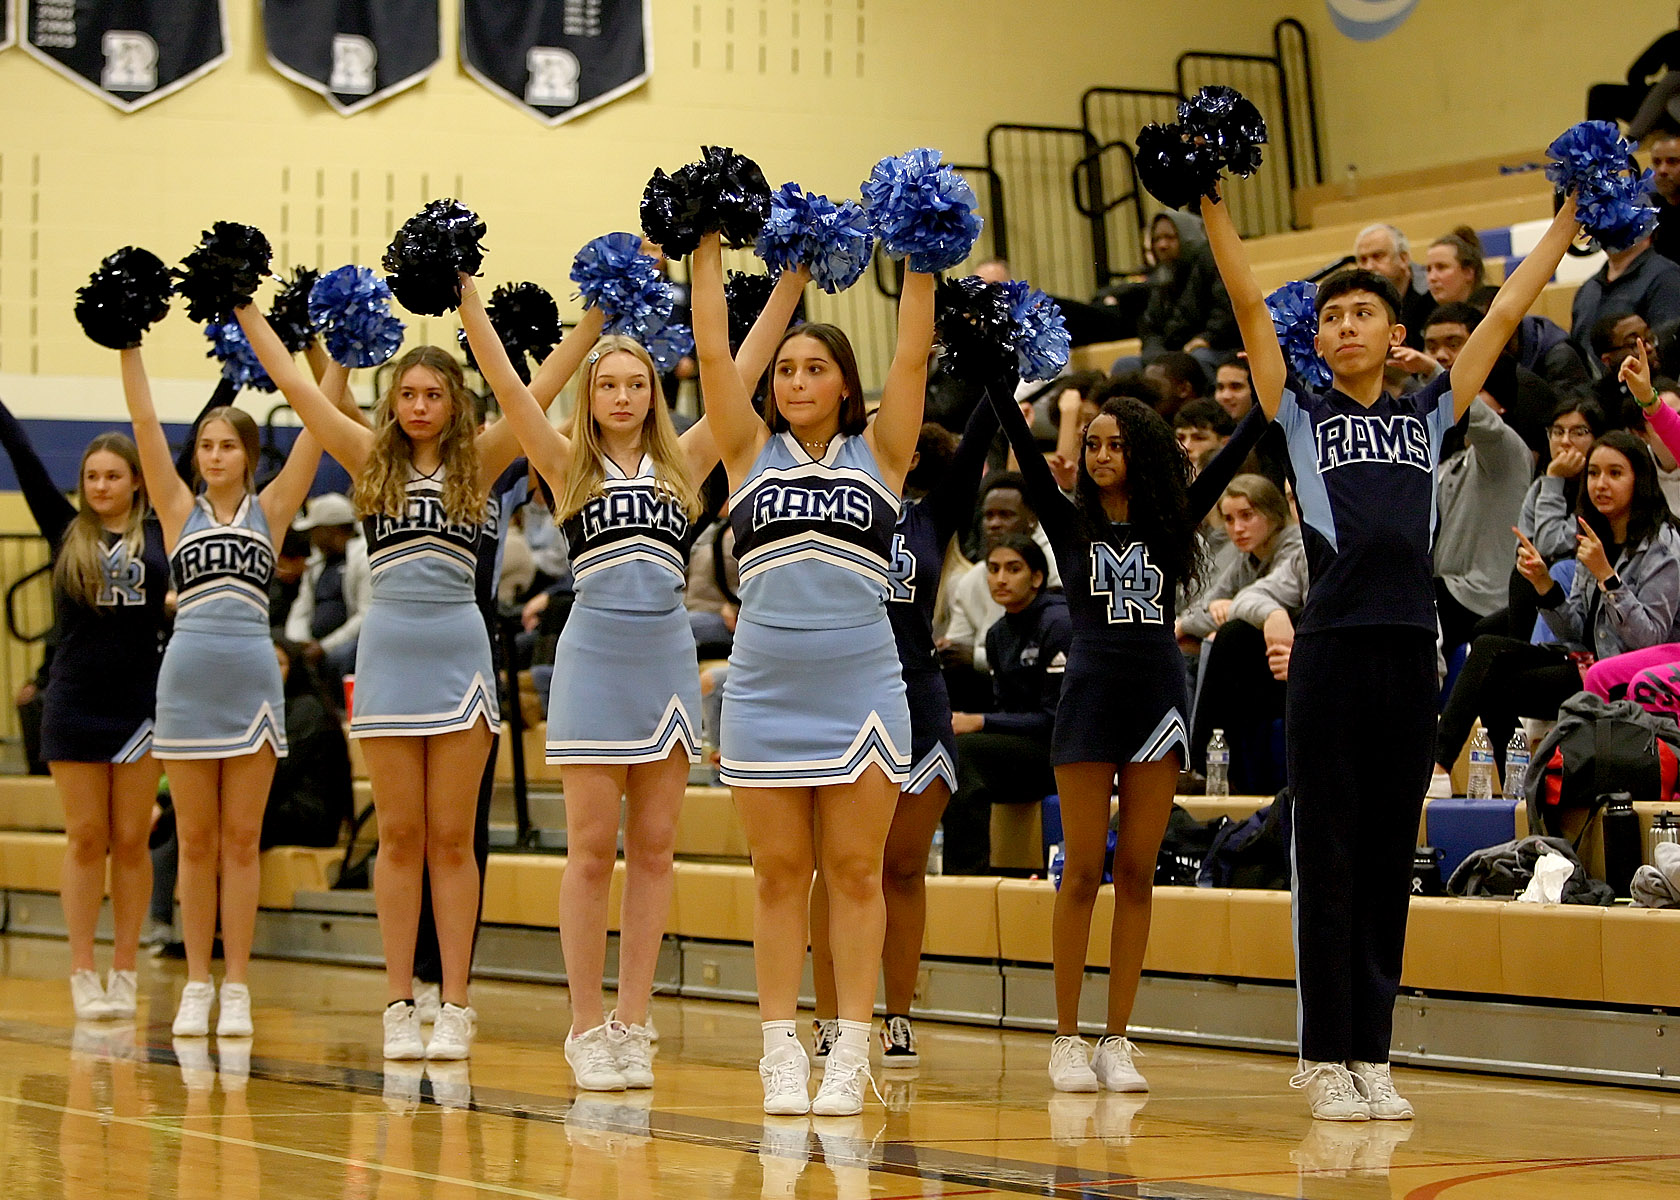 Mt Rainier's cheer leaders raise their pompoms during their teams free throw attempt.